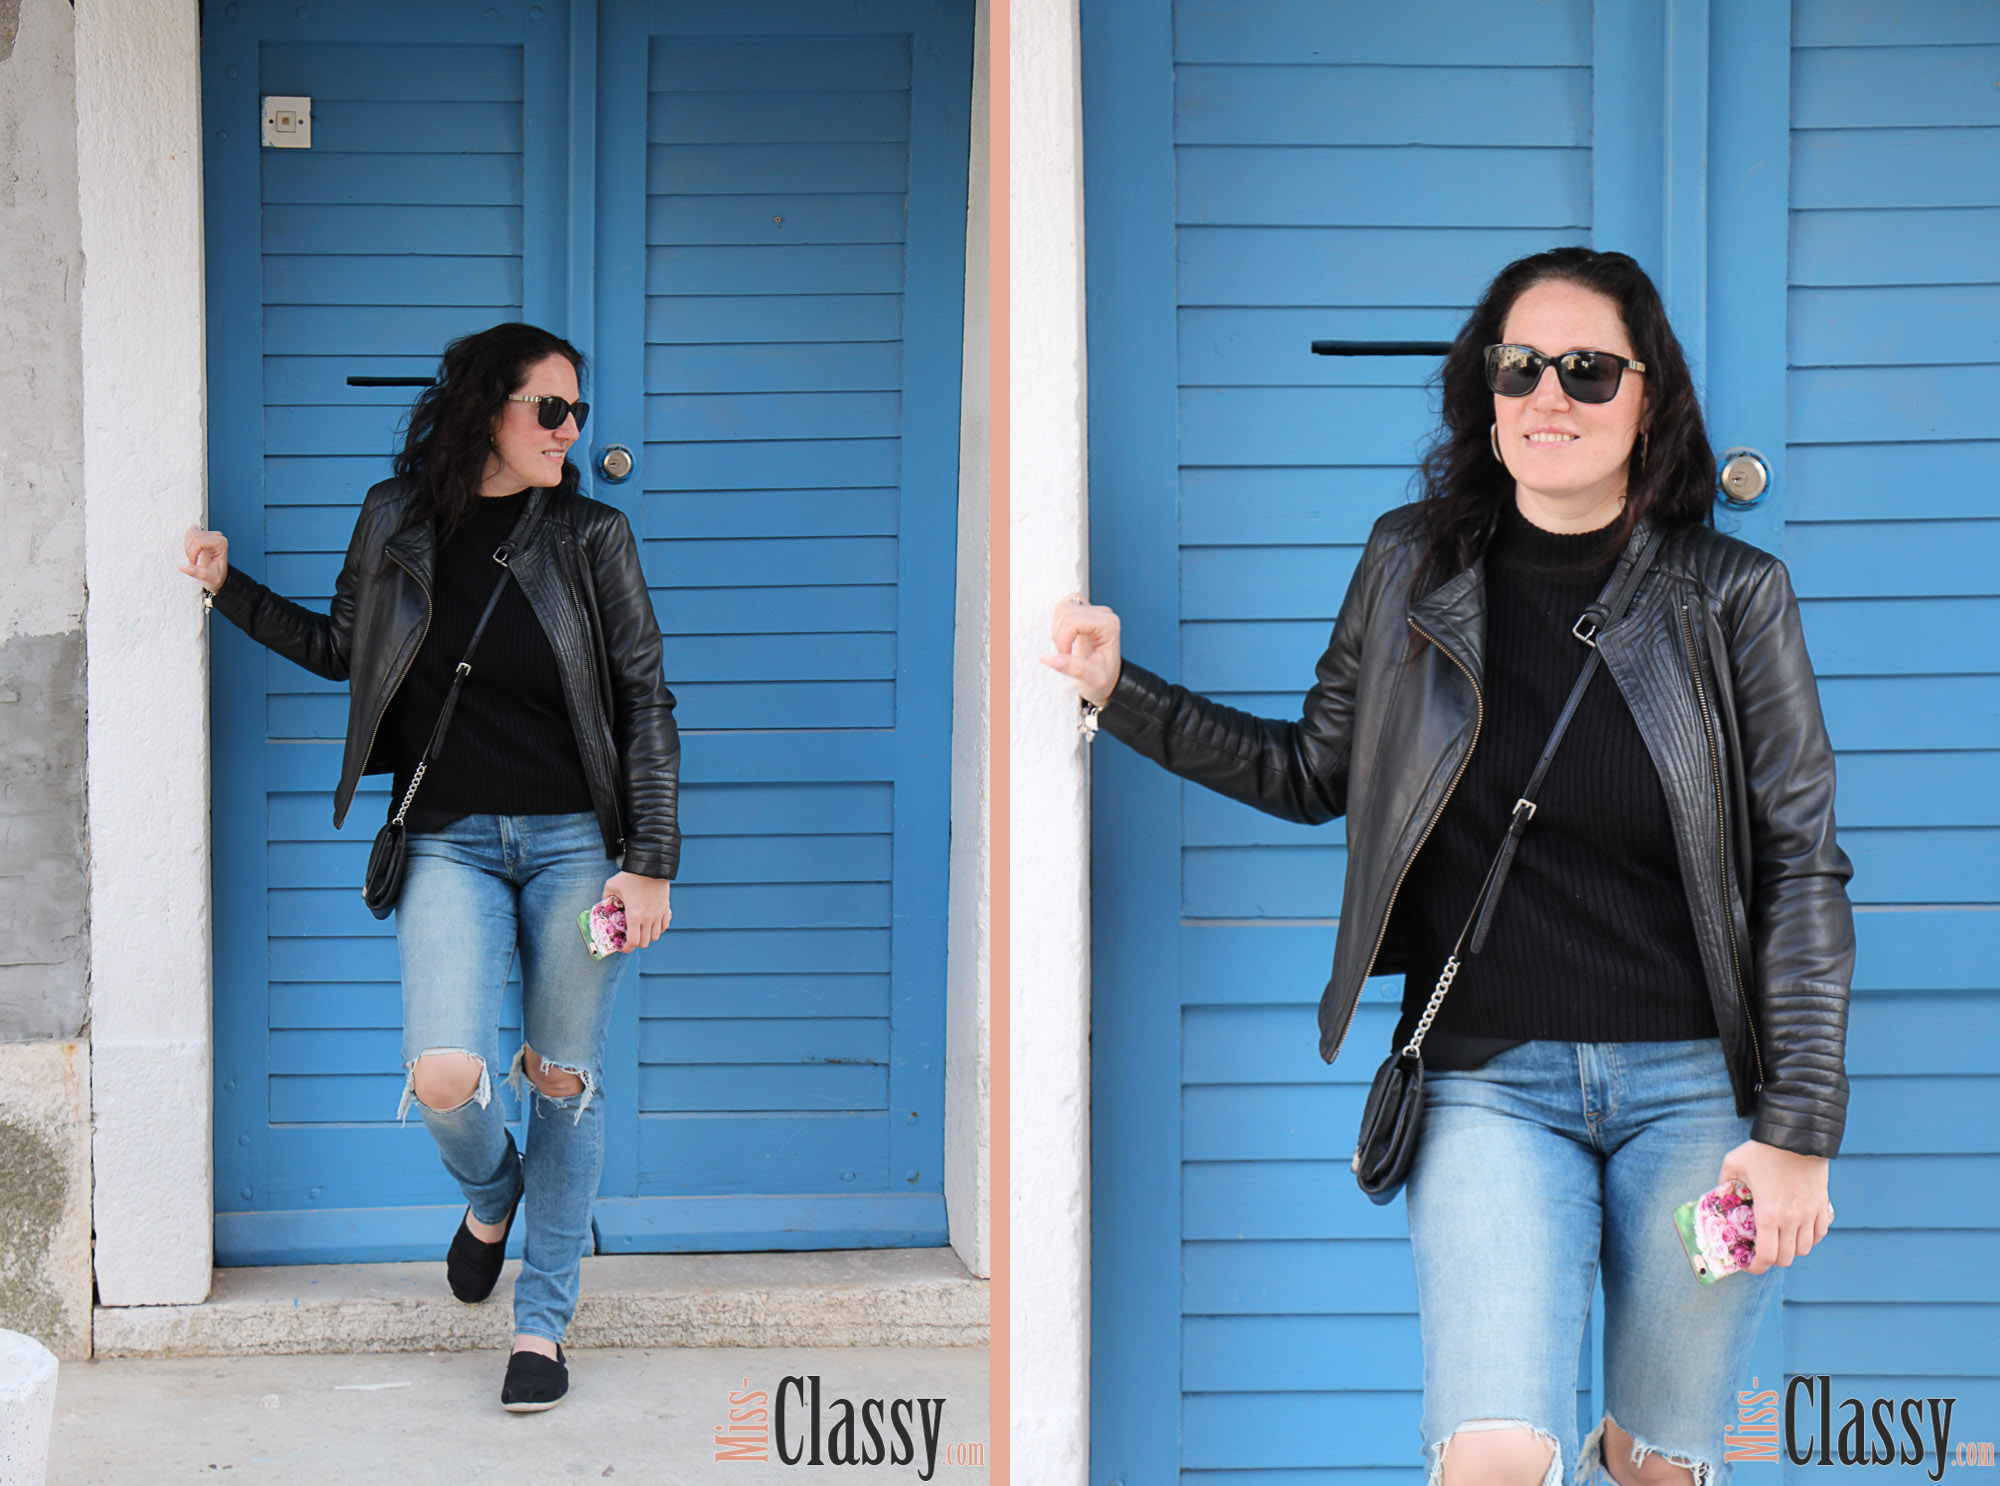 OUTFIT Lederjacke und Destroyed Jeans mit TOMs in Umag, Miss Classy, miss-classy.com, Fashionblog, Fashionblogger, Fashionblog Graz, Lifestyleblog Graz, Graz, Steiermark, Österreich, classy, beclassy, classy Fashion, Outfit, Style, Fashion, Mode, OOTD, Lederjacke, Hallhuber, Sonnenbrille Burberry, Clutch, Michael Kors, Daniel Wellington, TOMs, Espadrilles, Destroyed Jeans, Umag, Meer